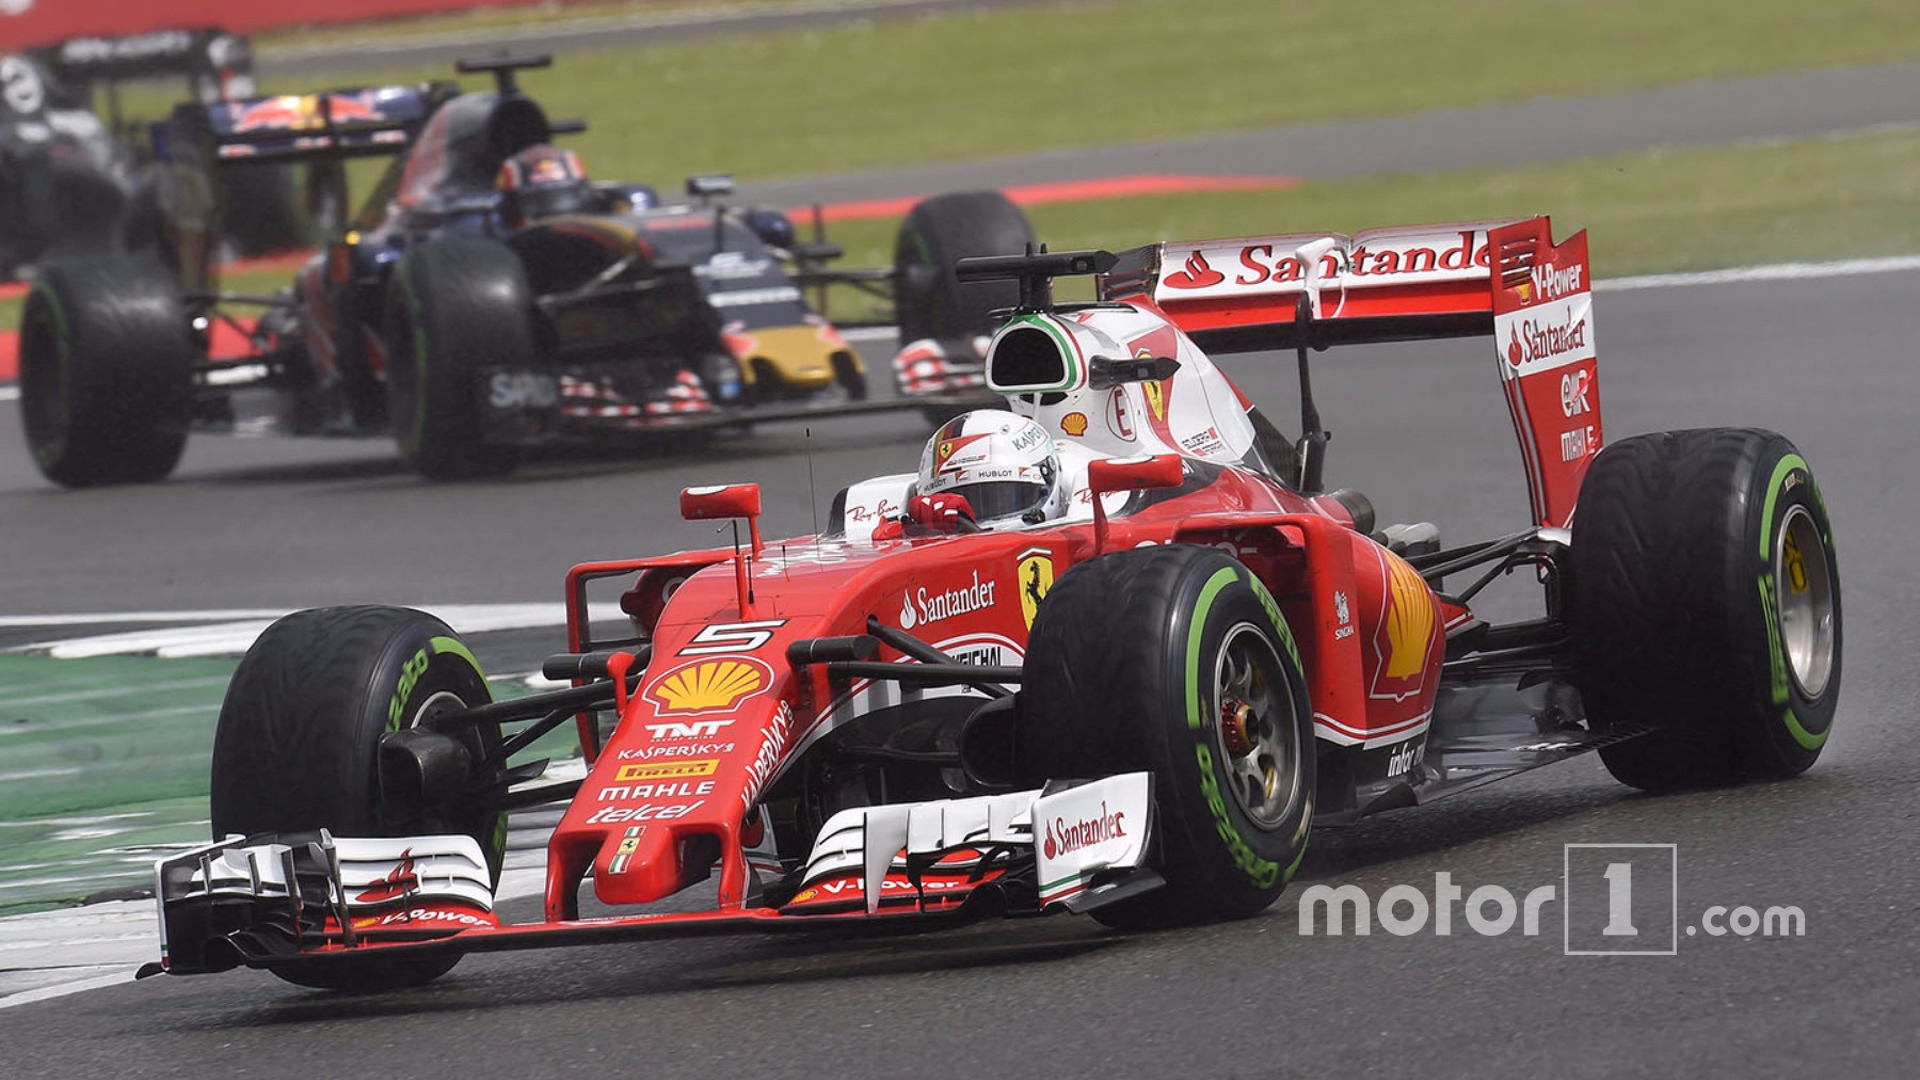 ending sale of old F1 cars to customers